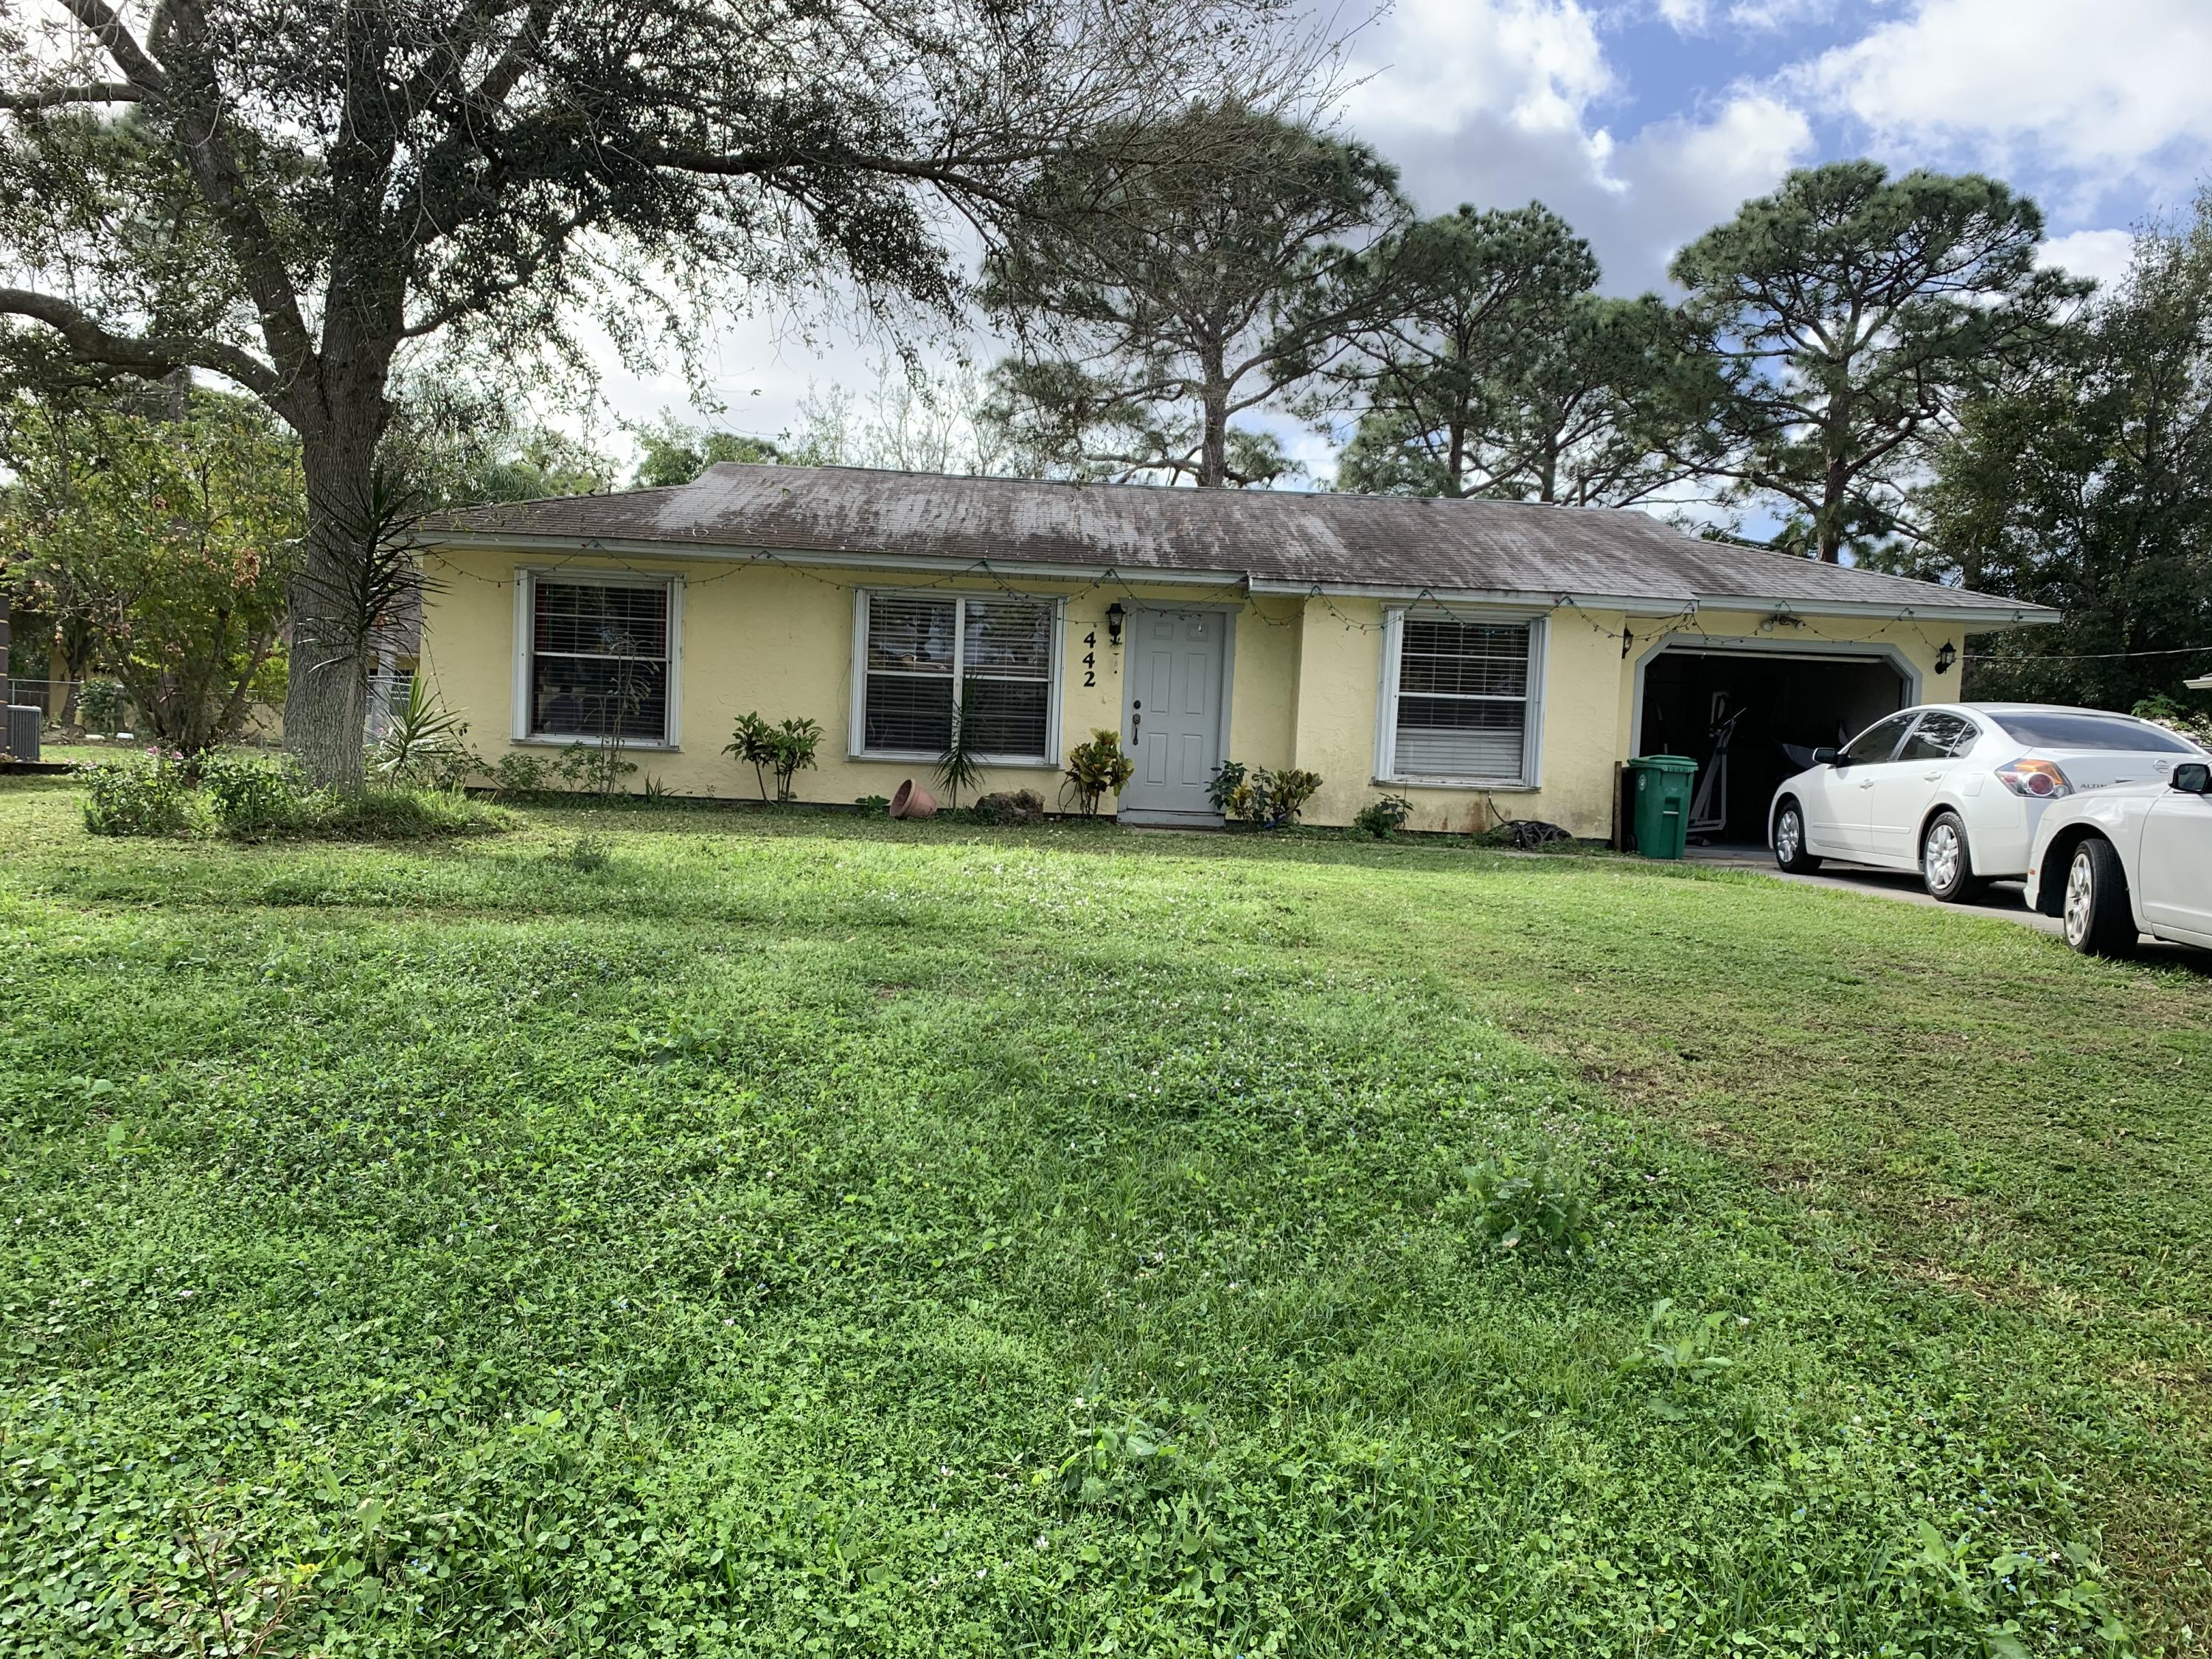 442 Lincoln Avenue, Port Saint Lucie, Florida 34983, 2 Bedrooms Bedrooms, ,2 BathroomsBathrooms,A,Single family,Lincoln,RX-10591622